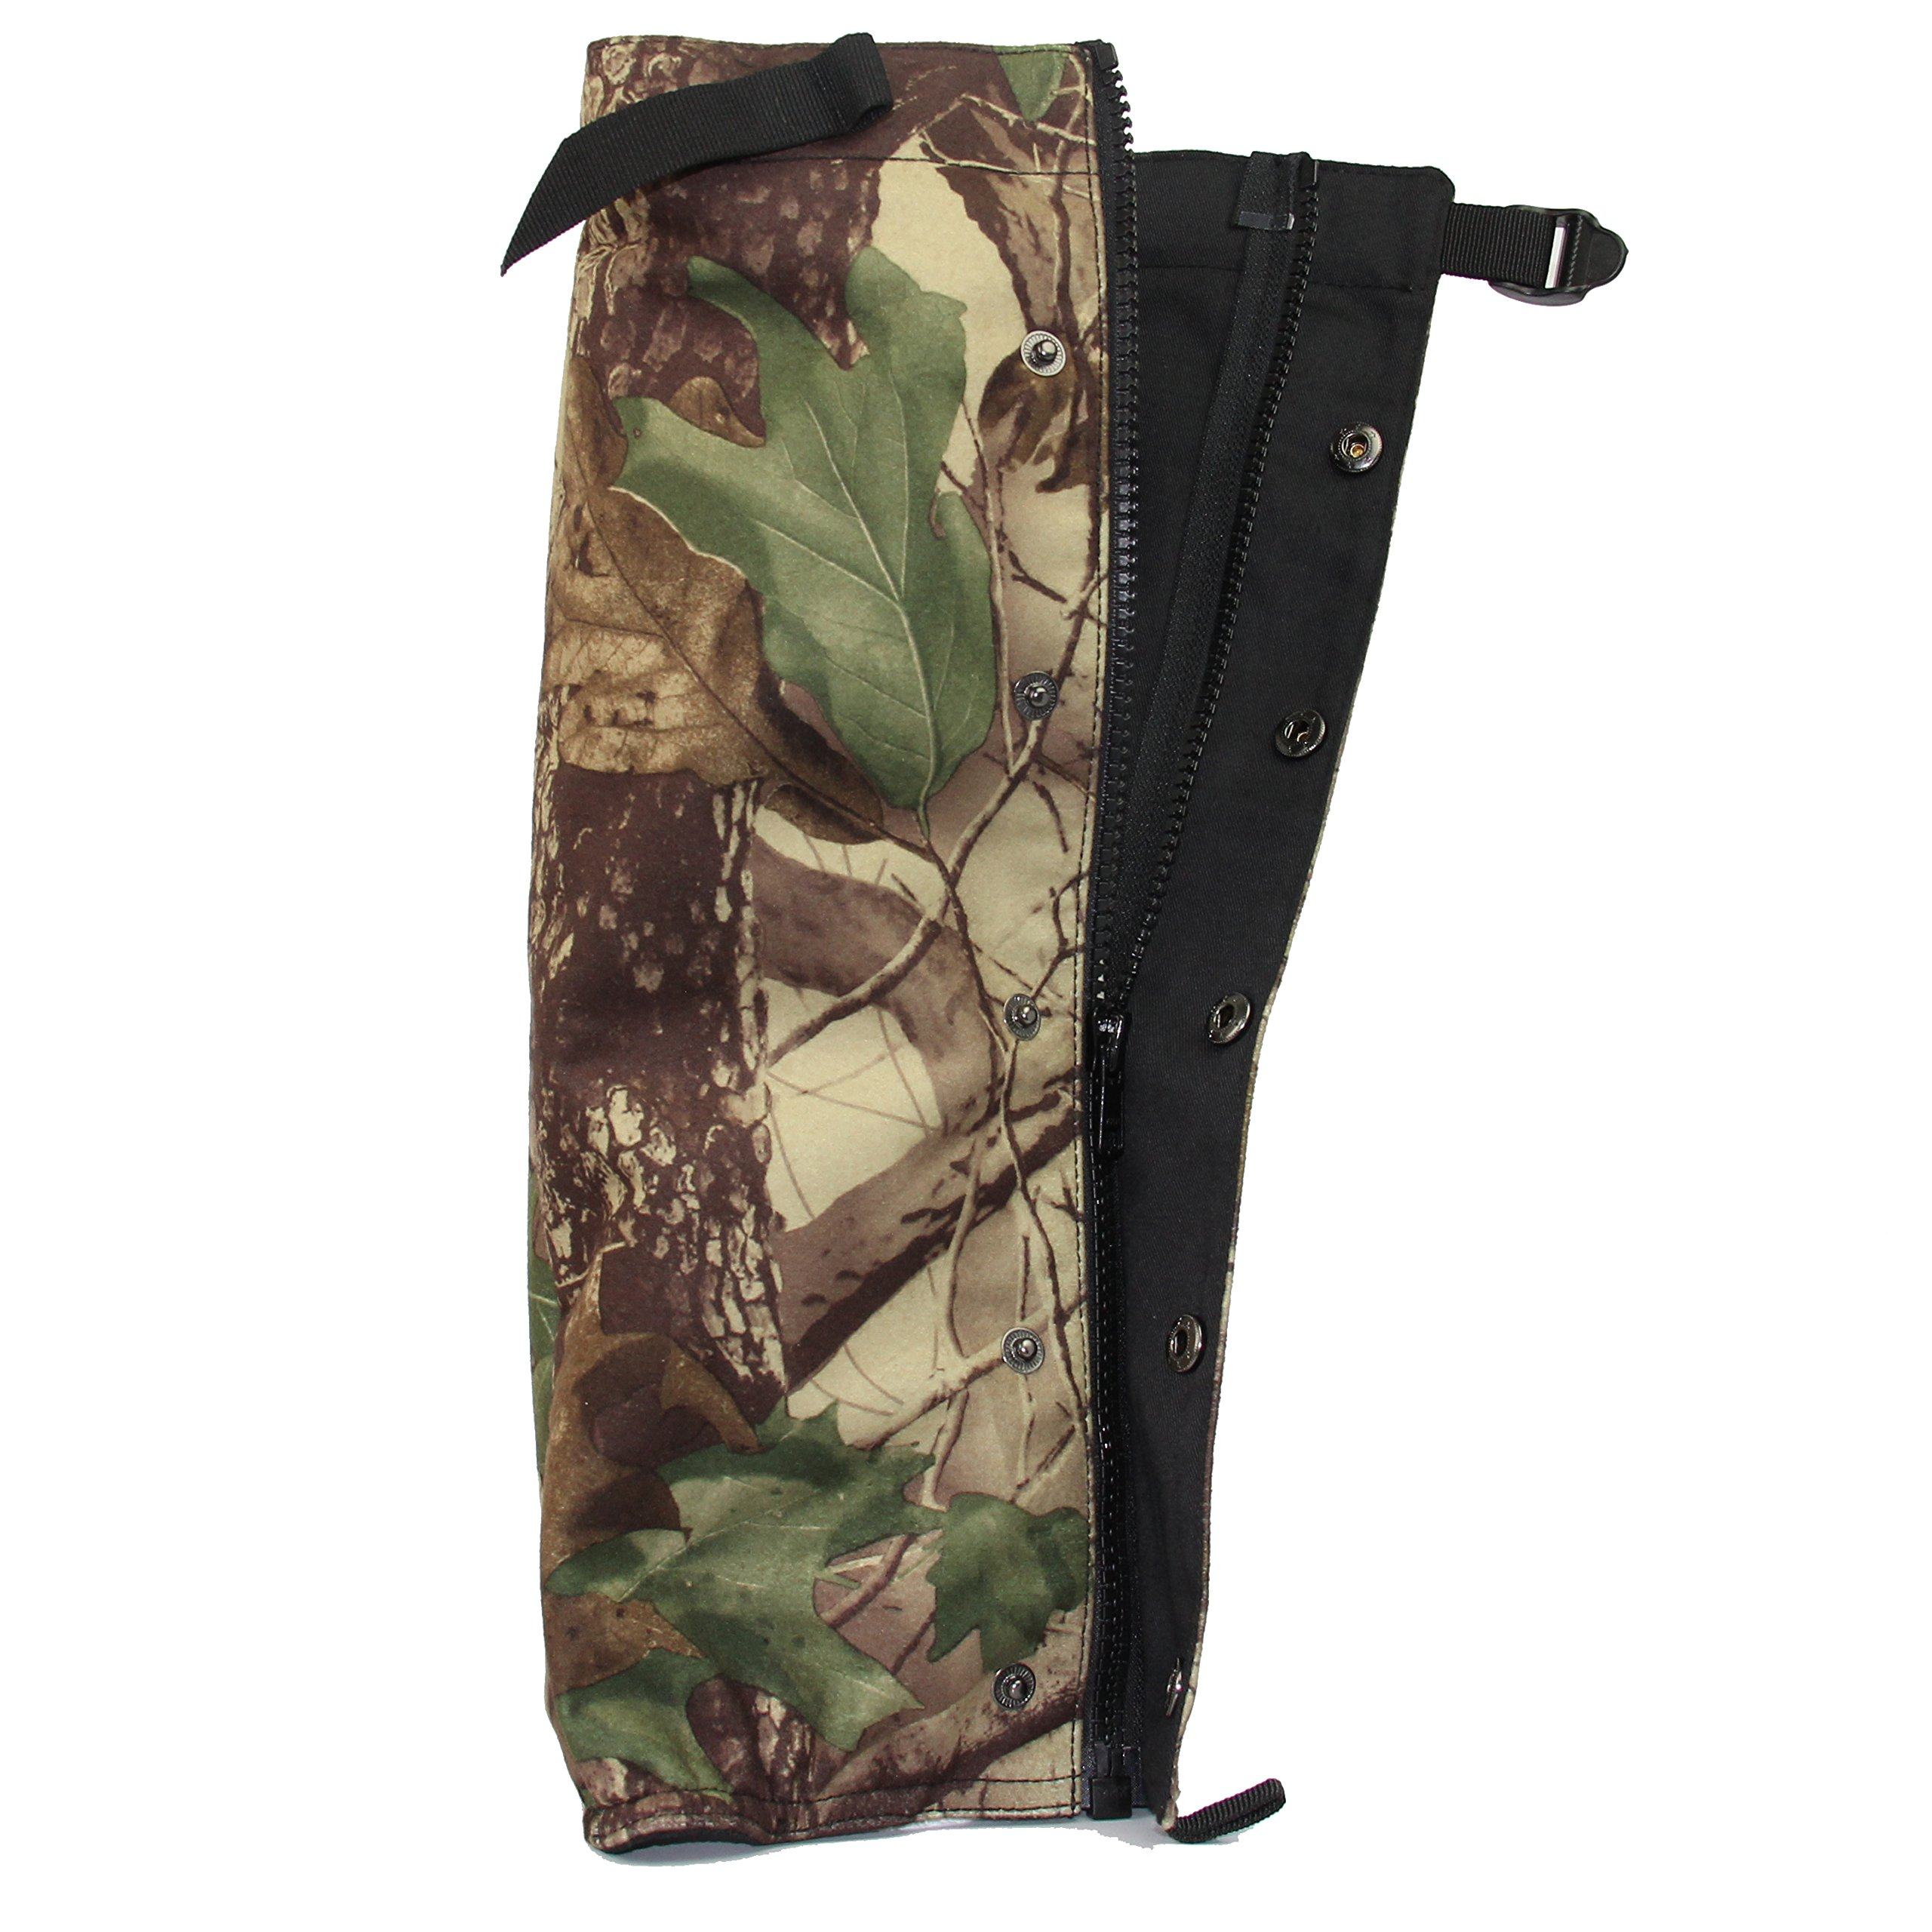 U.S. Solid Snake Gaiters- Snake Guards Snake Proof Leggings for Ultimate Snake Bite Protection, Protects Against All Types of Rattlesnakes, and Other Poisonous Snakes by U.S. Solid